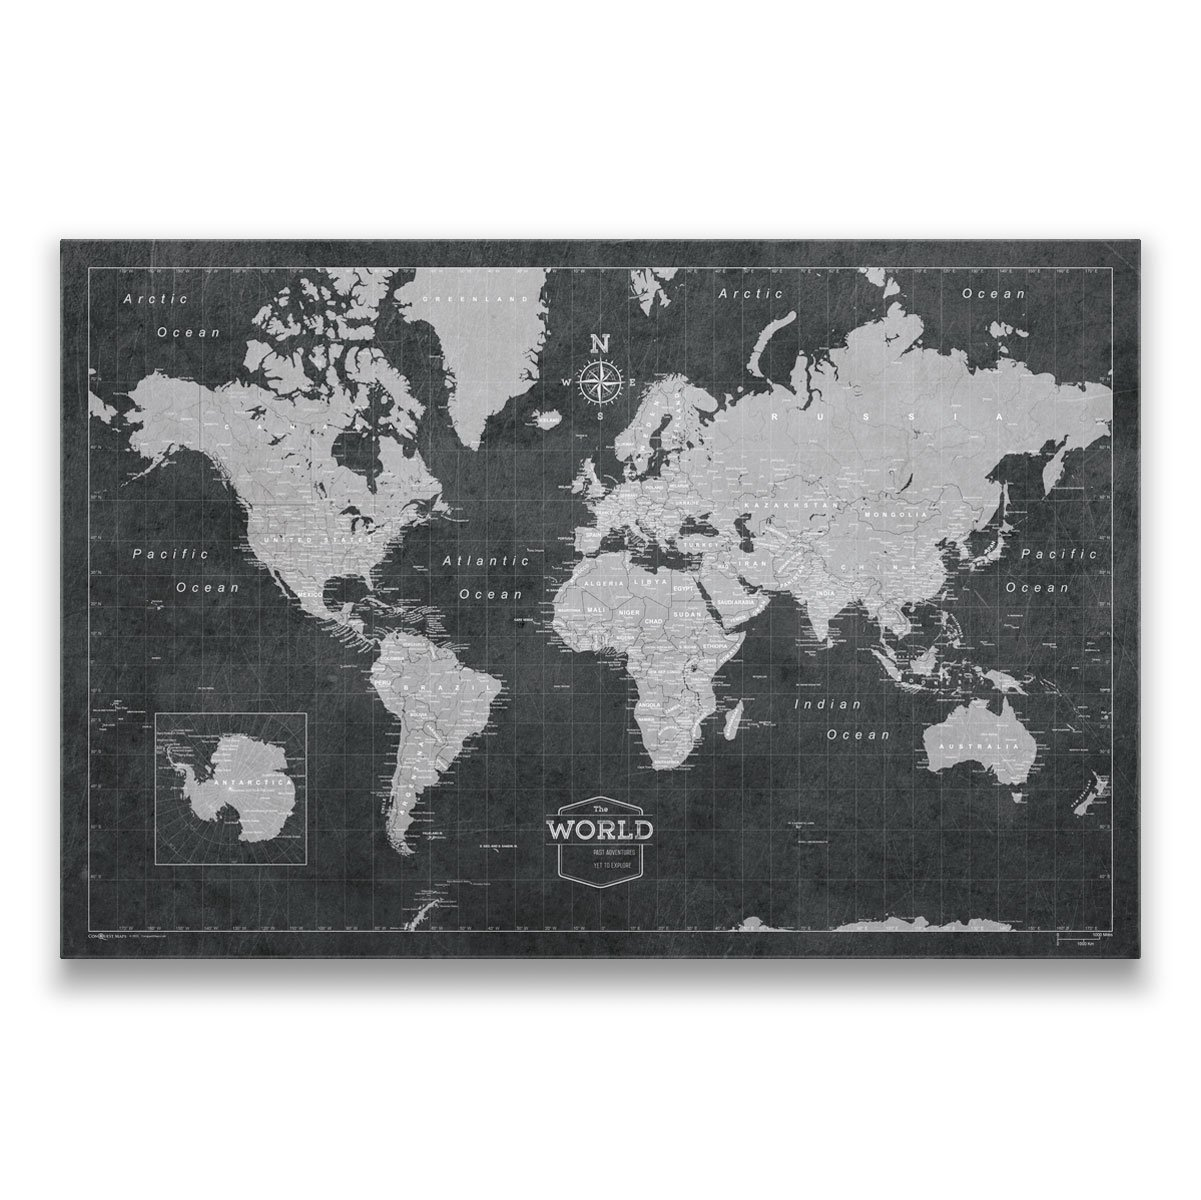 Perfect gift for the travelers, corkboard map to track all the adventures.